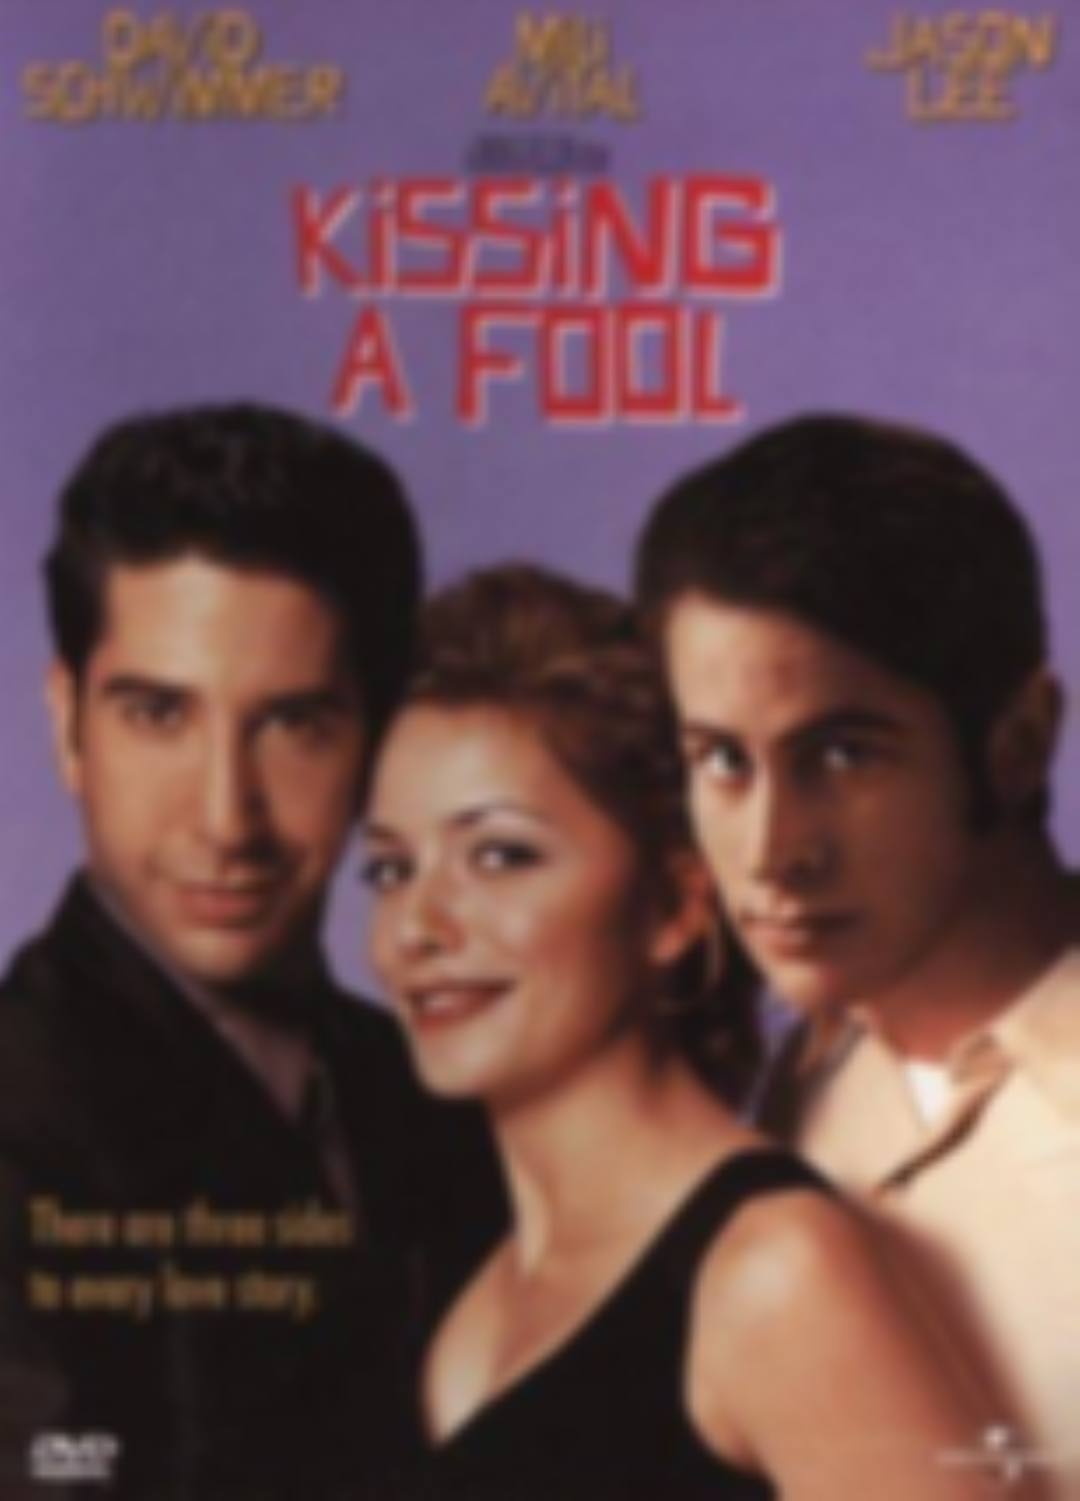 Kissing a Fool Vhs